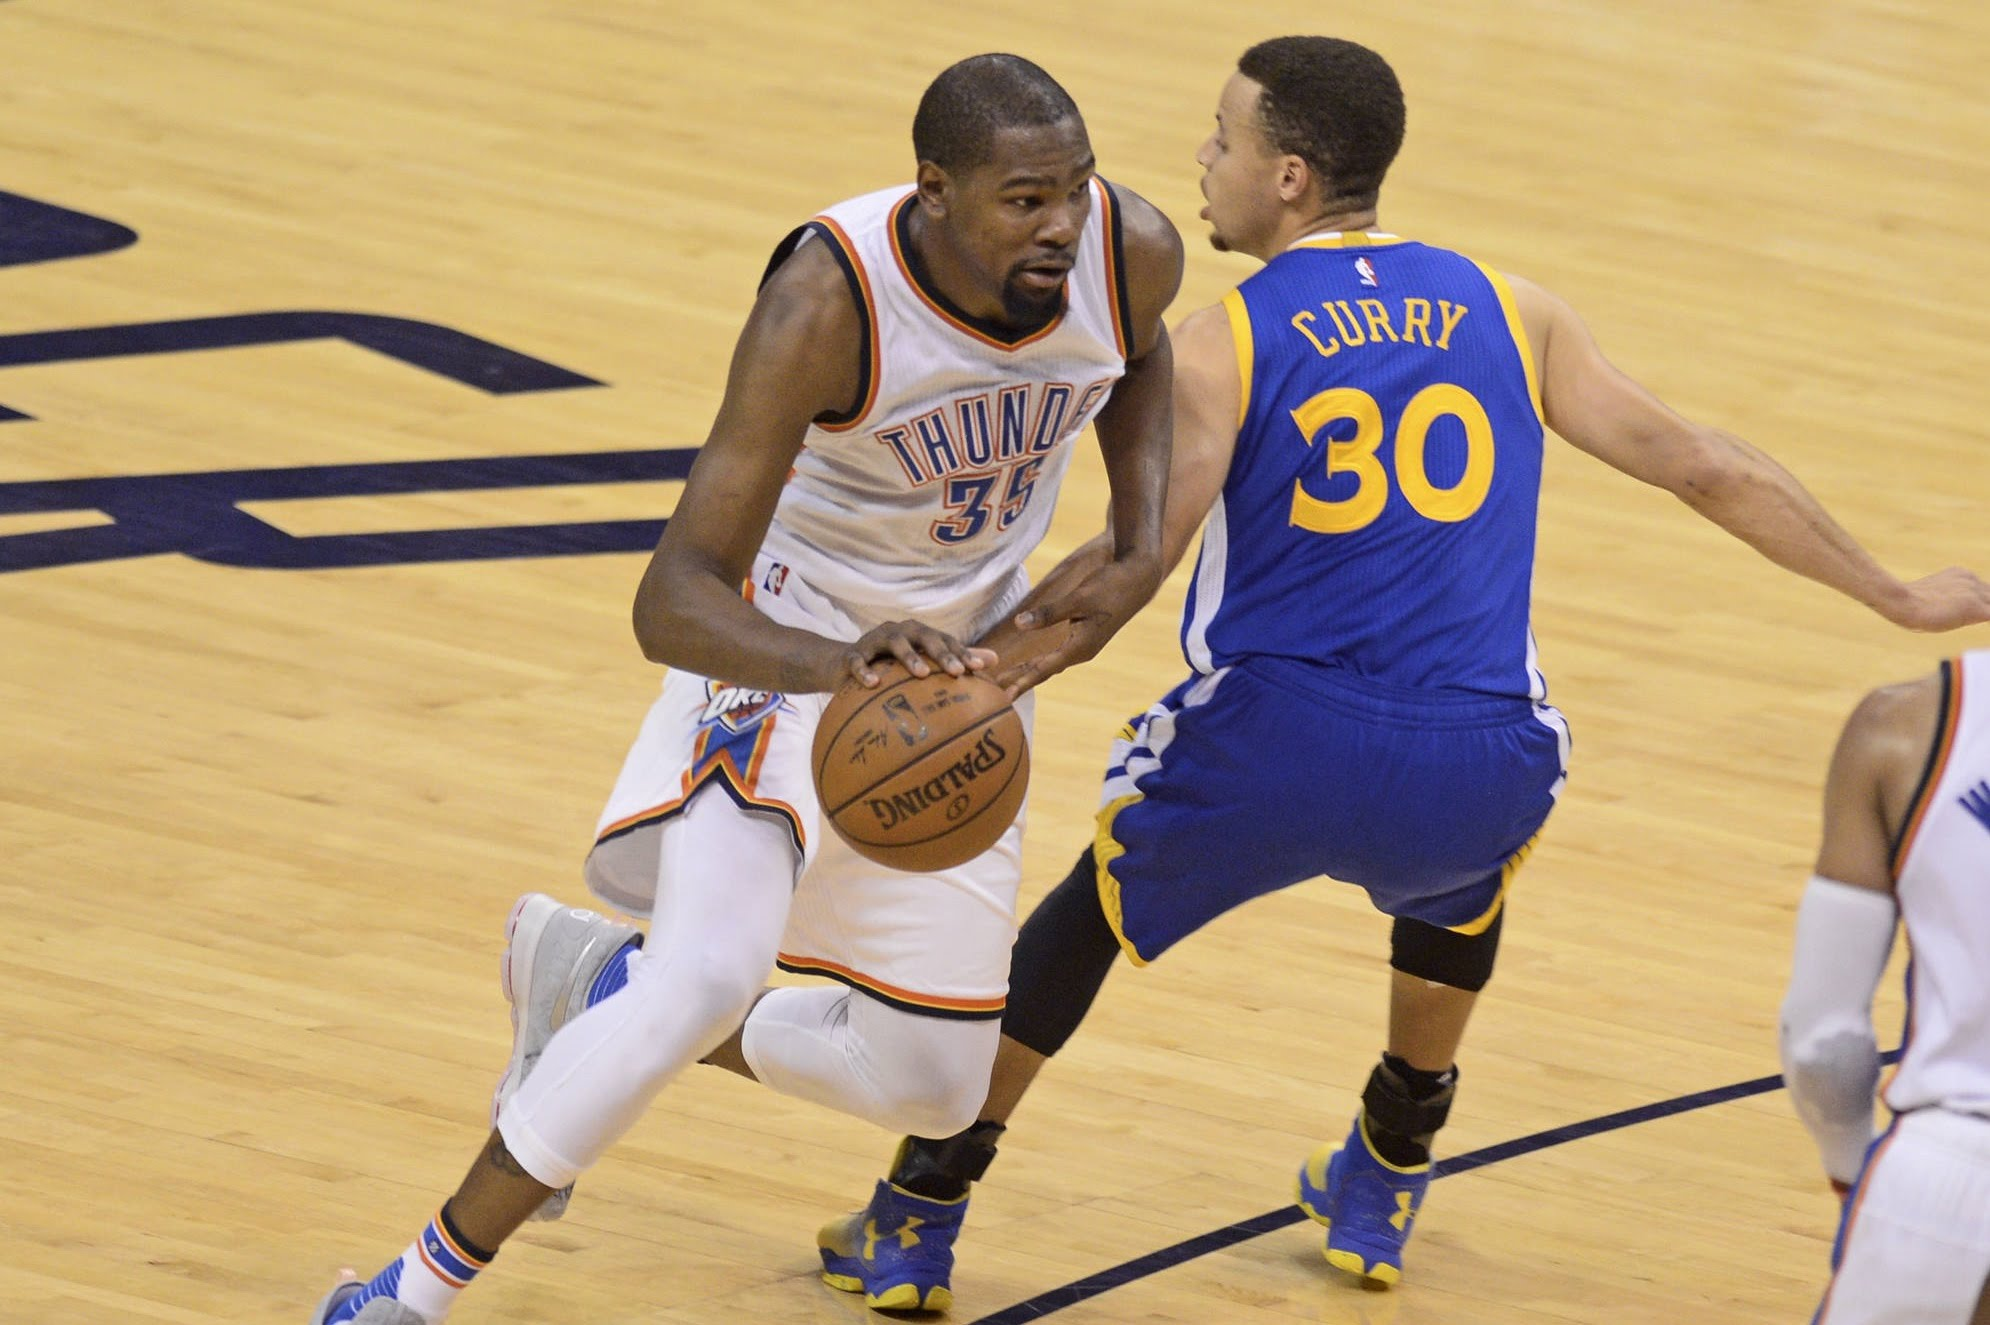 Oklahoma City Thunder at Golden State Warriors Game 5